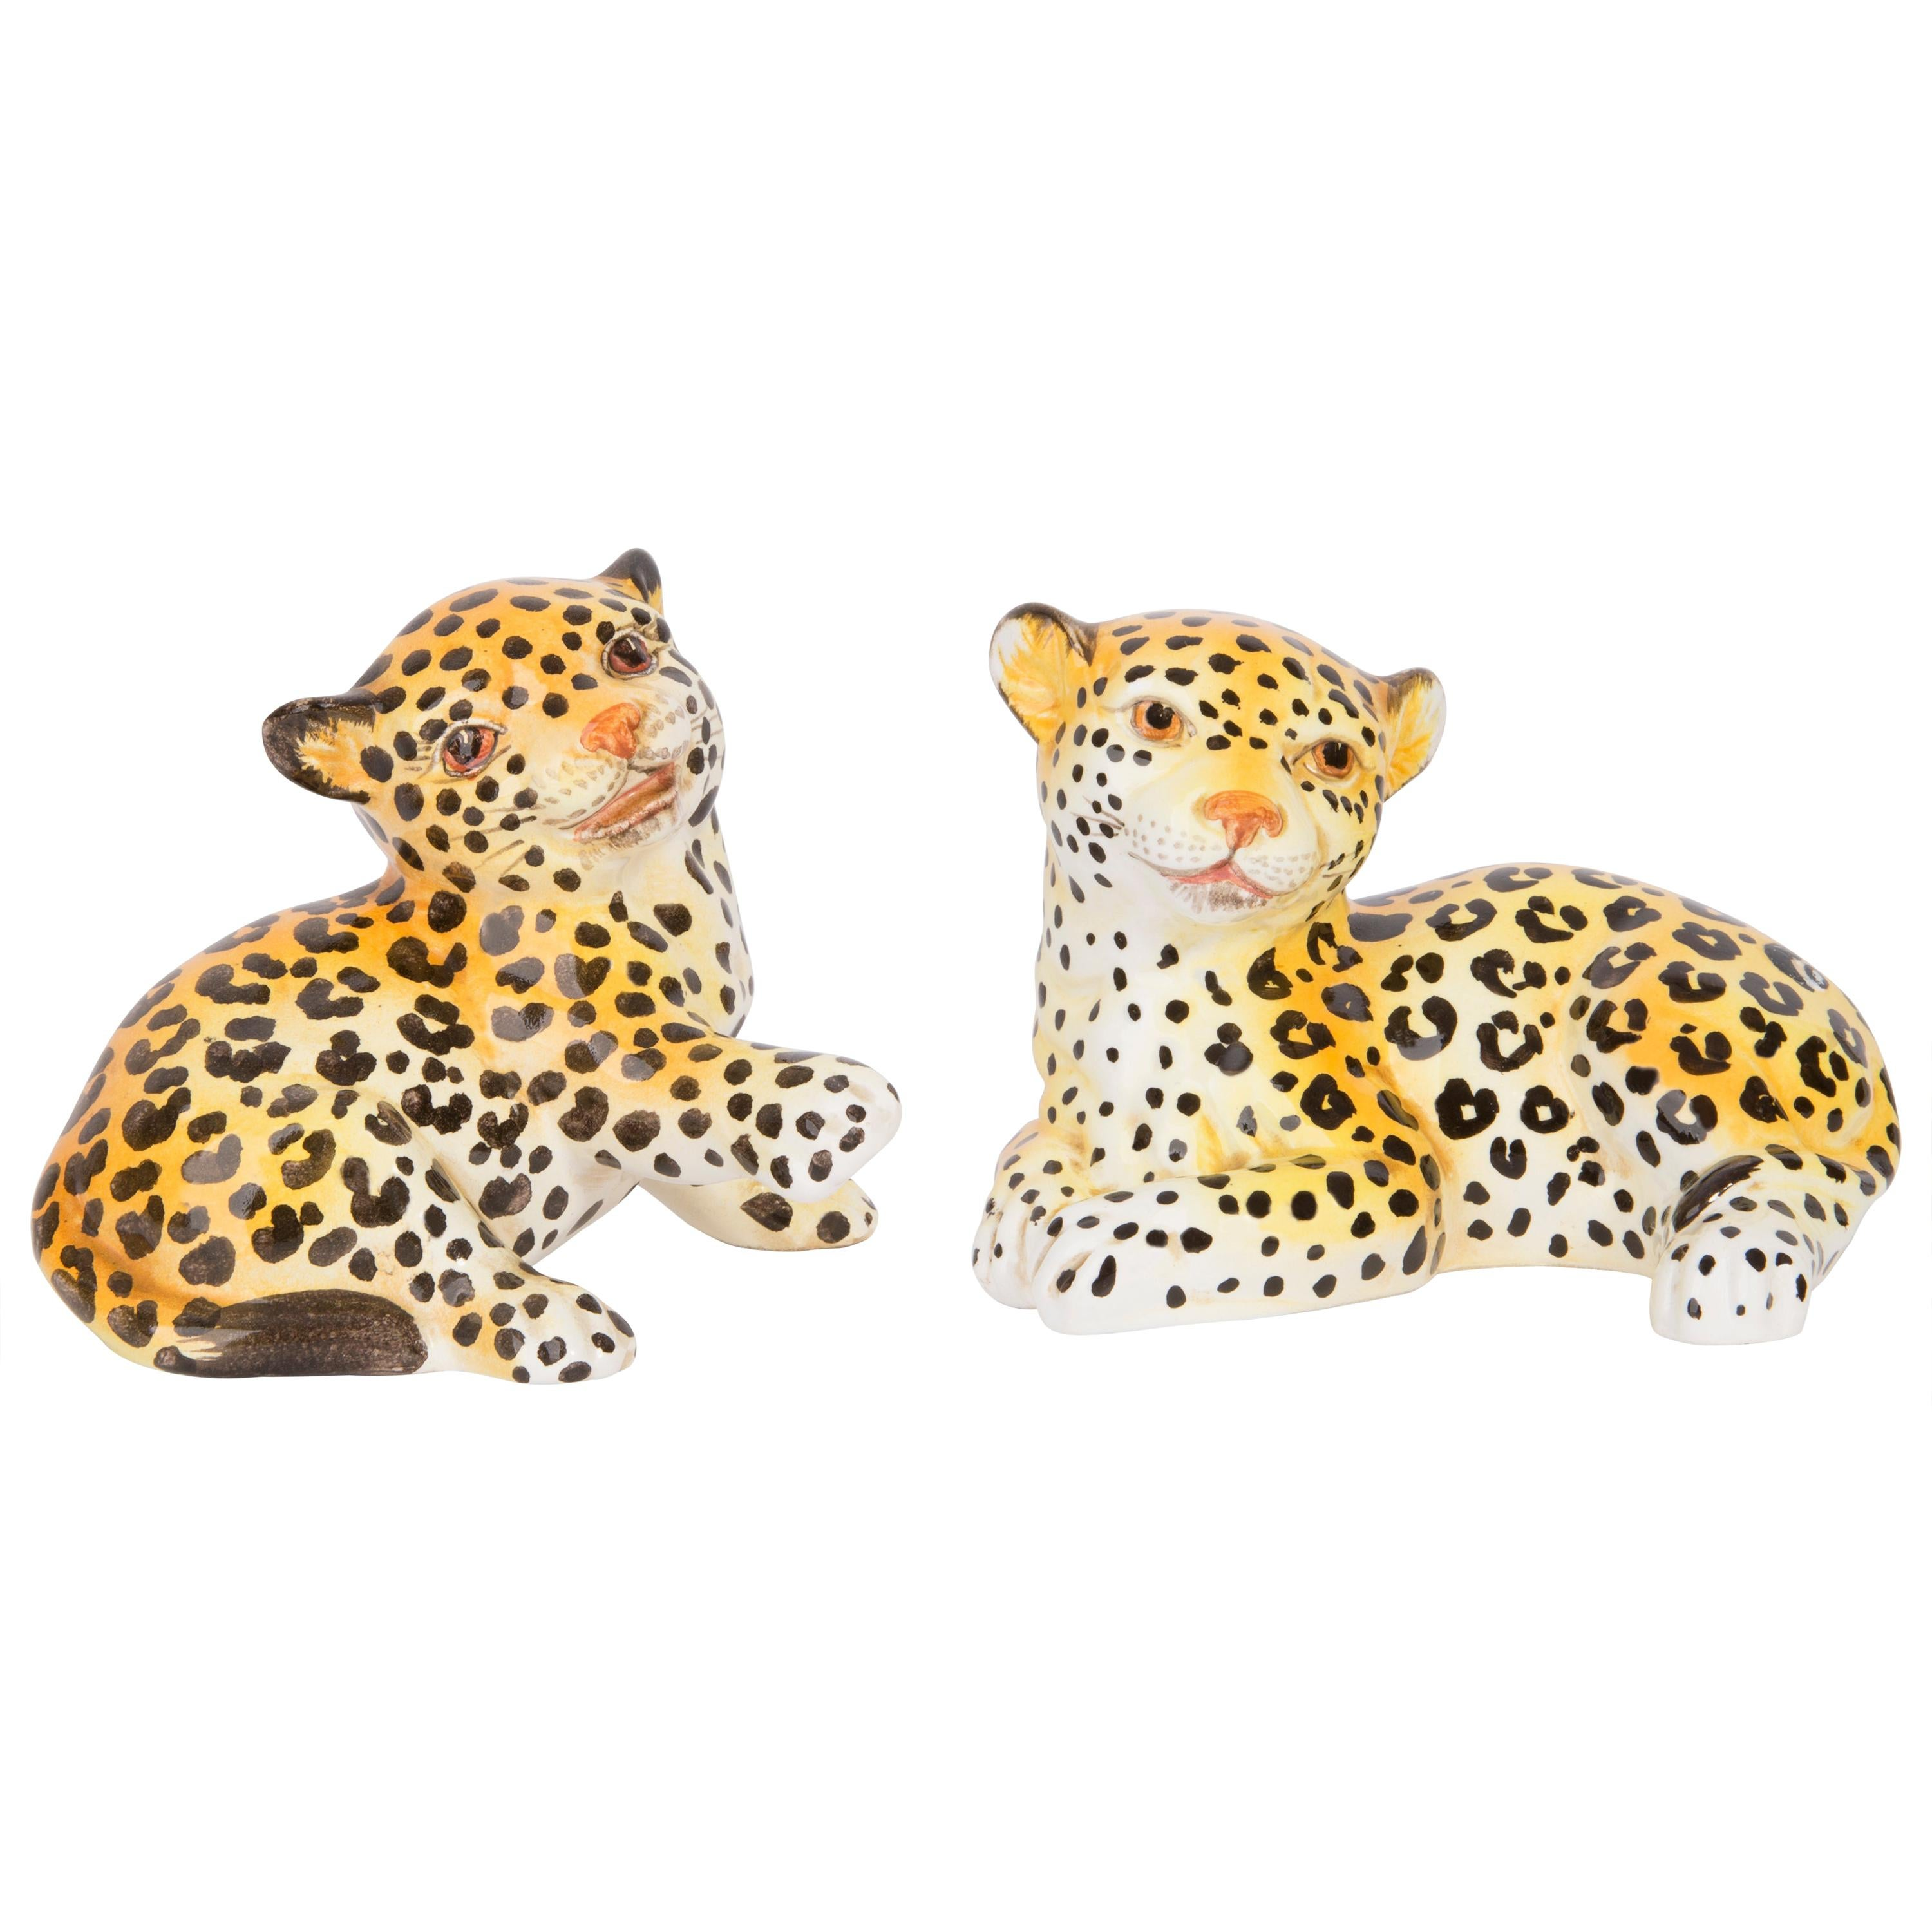 Set of Two Small Rare Ceramic Leopards Decorative Sculptures, Italy, 1960s